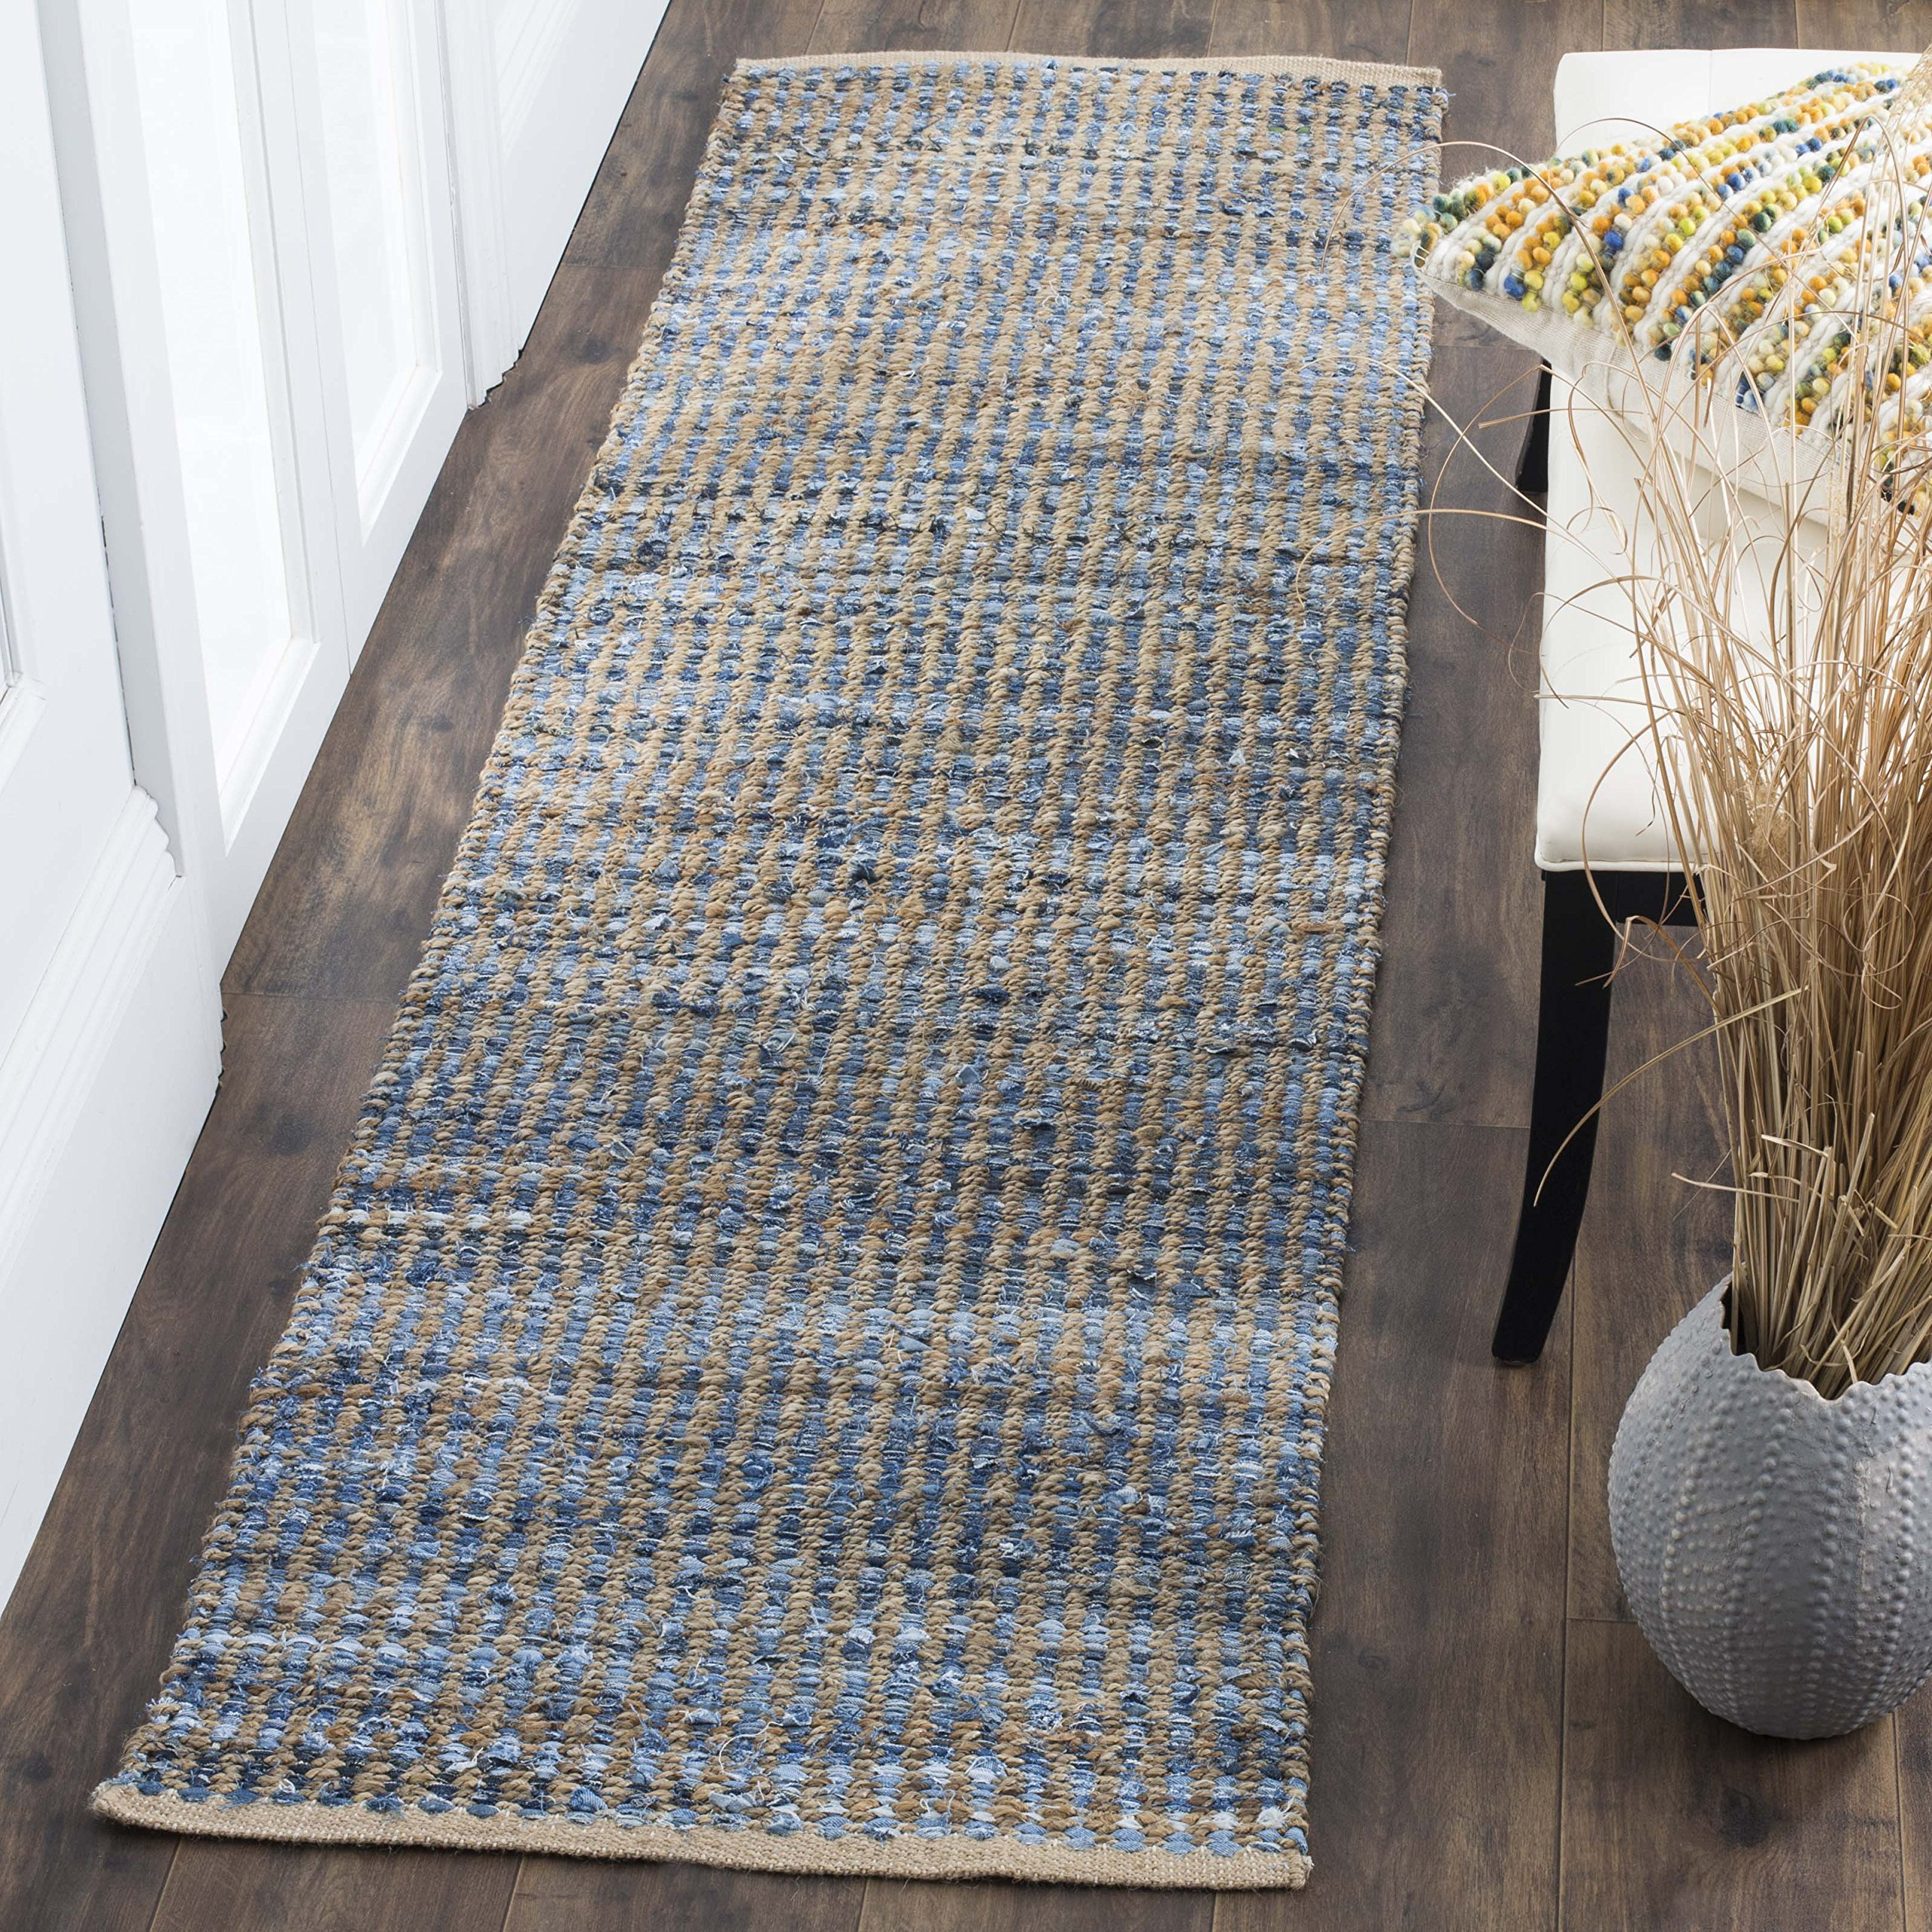 Safavieh Cape Cod Collection CAP352A Hand Woven Flatweave Natural and Blue Striped Jute Runner (2'3'' x 6') by Safavieh